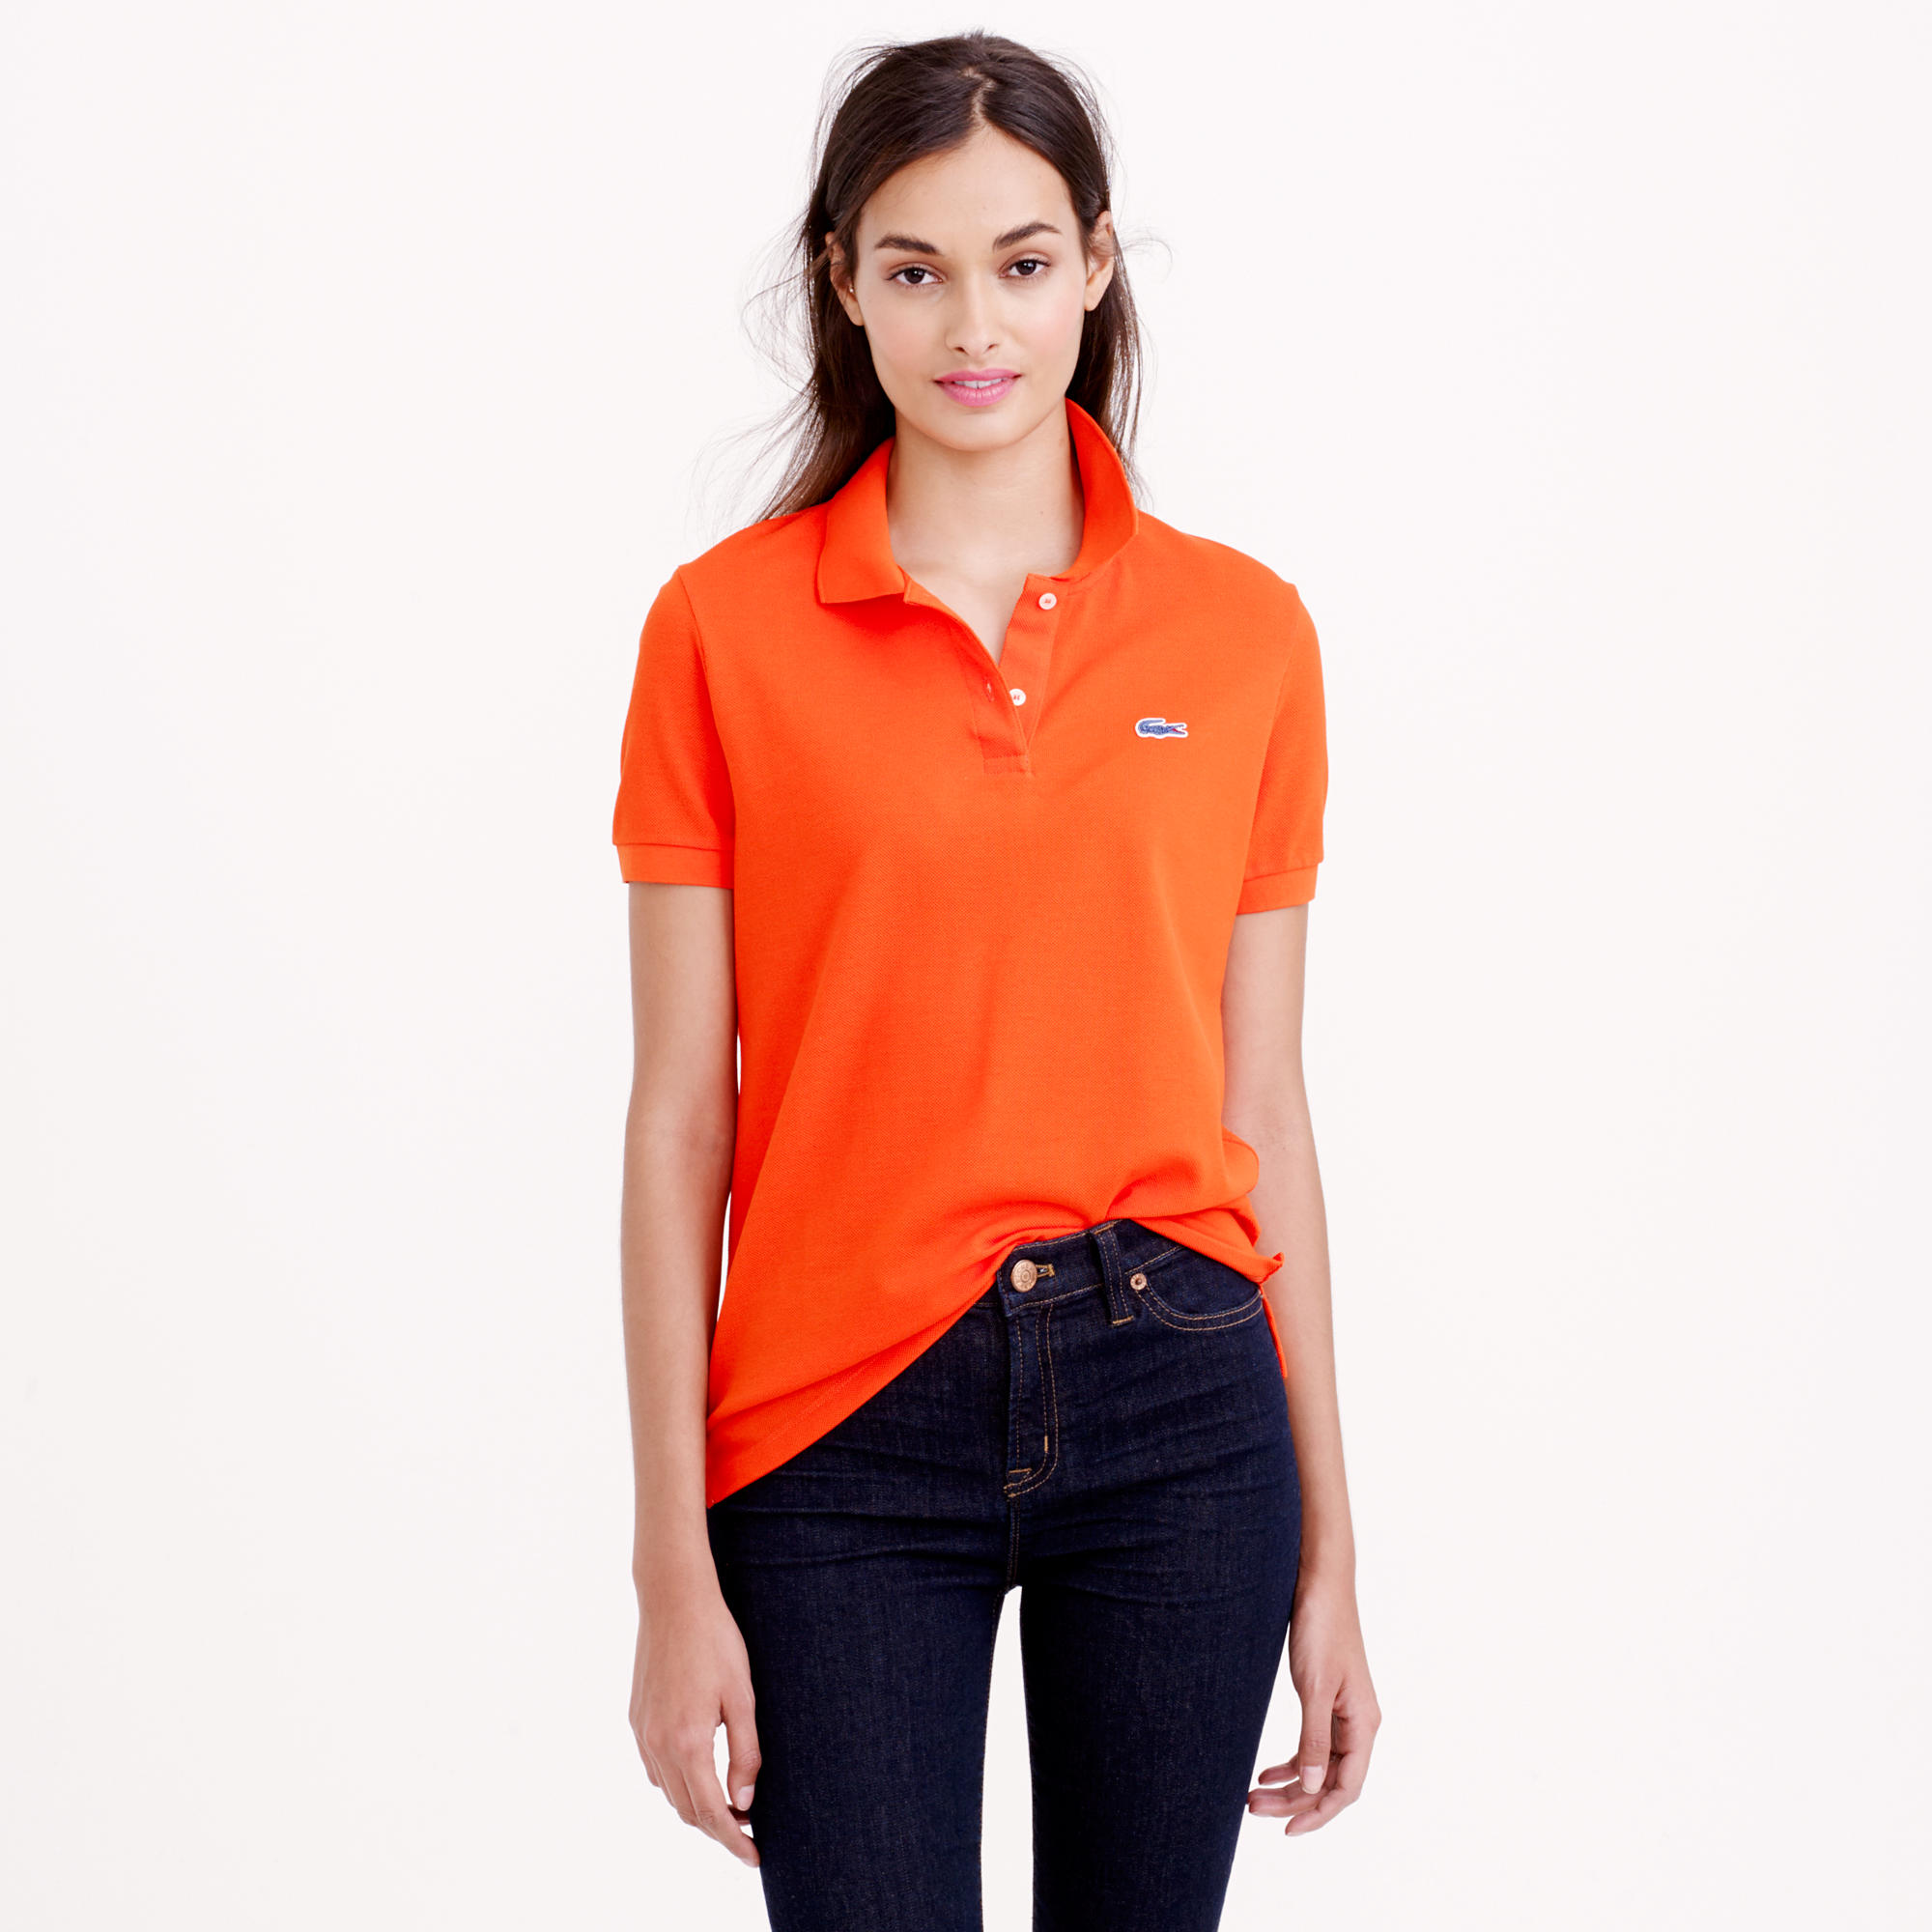 See Lacoste x J.Crew Collaboration Polo Shirt